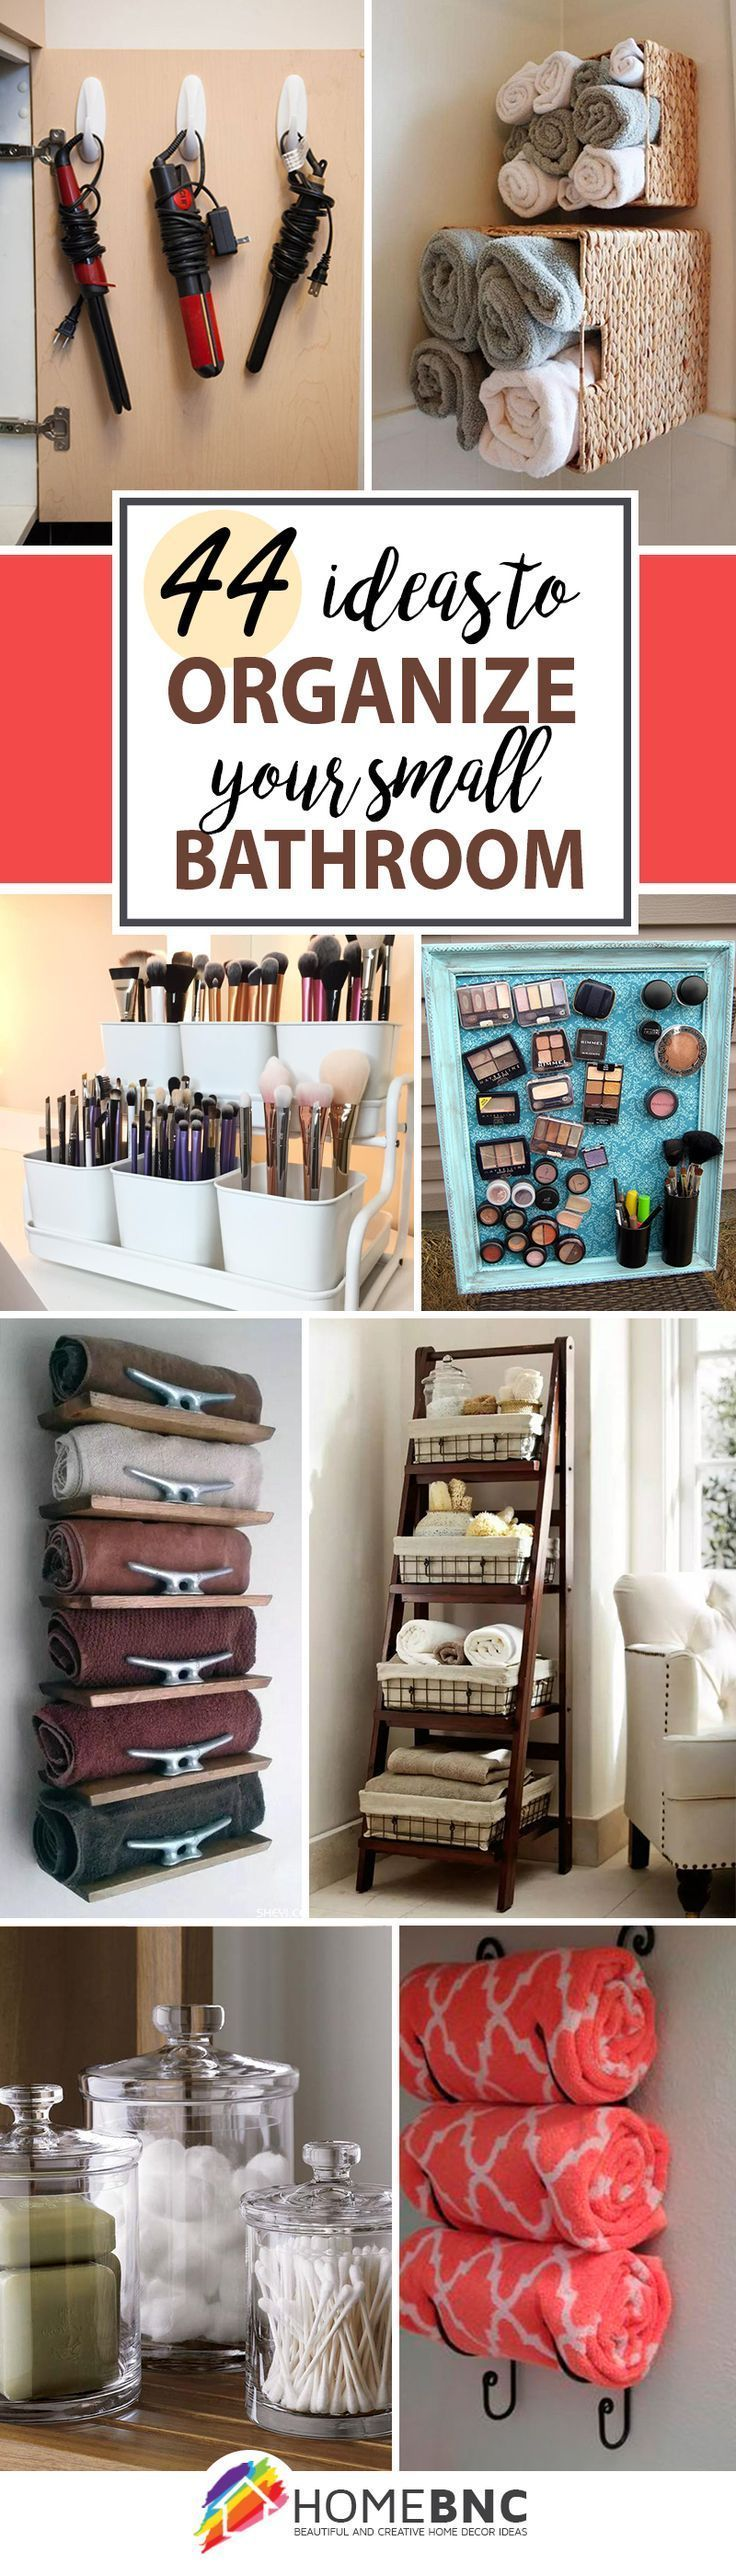 Small bathroom storage ideas - 44 Unique Storage Ideas For A Small Bathroom To Make Yours Bigger